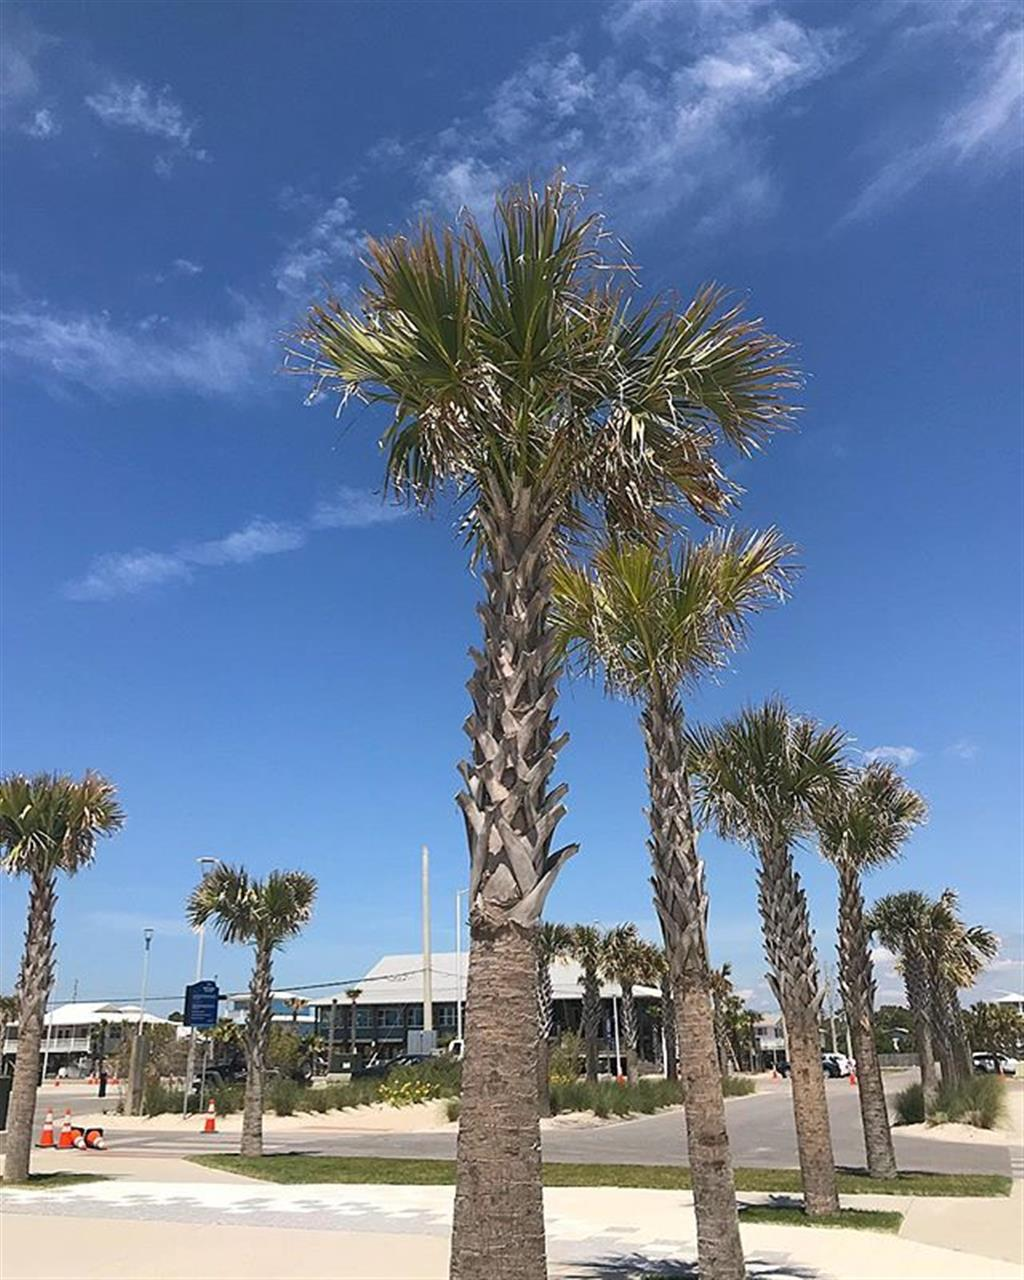 Happy Friday from sunny #gulfshoresalabama. ÔÿÇ Loving the new construction to our stunning, public beaches! #FindYourChampion . BellatorAL.com . . . . . . . . . . #beach #realestate #realtors #beachday #saltlife #community #coastal #alabama #gulfcoast #alabamagulfcoast #beauty #palmtrees #sand #realtors #leadingrelocal #condosforsale #beachrealestate #vacationhome #luxurylifestyle #luxuryliving #luxuryportfolio #orangebeachal #onoisland #baldwincounty #pensecola